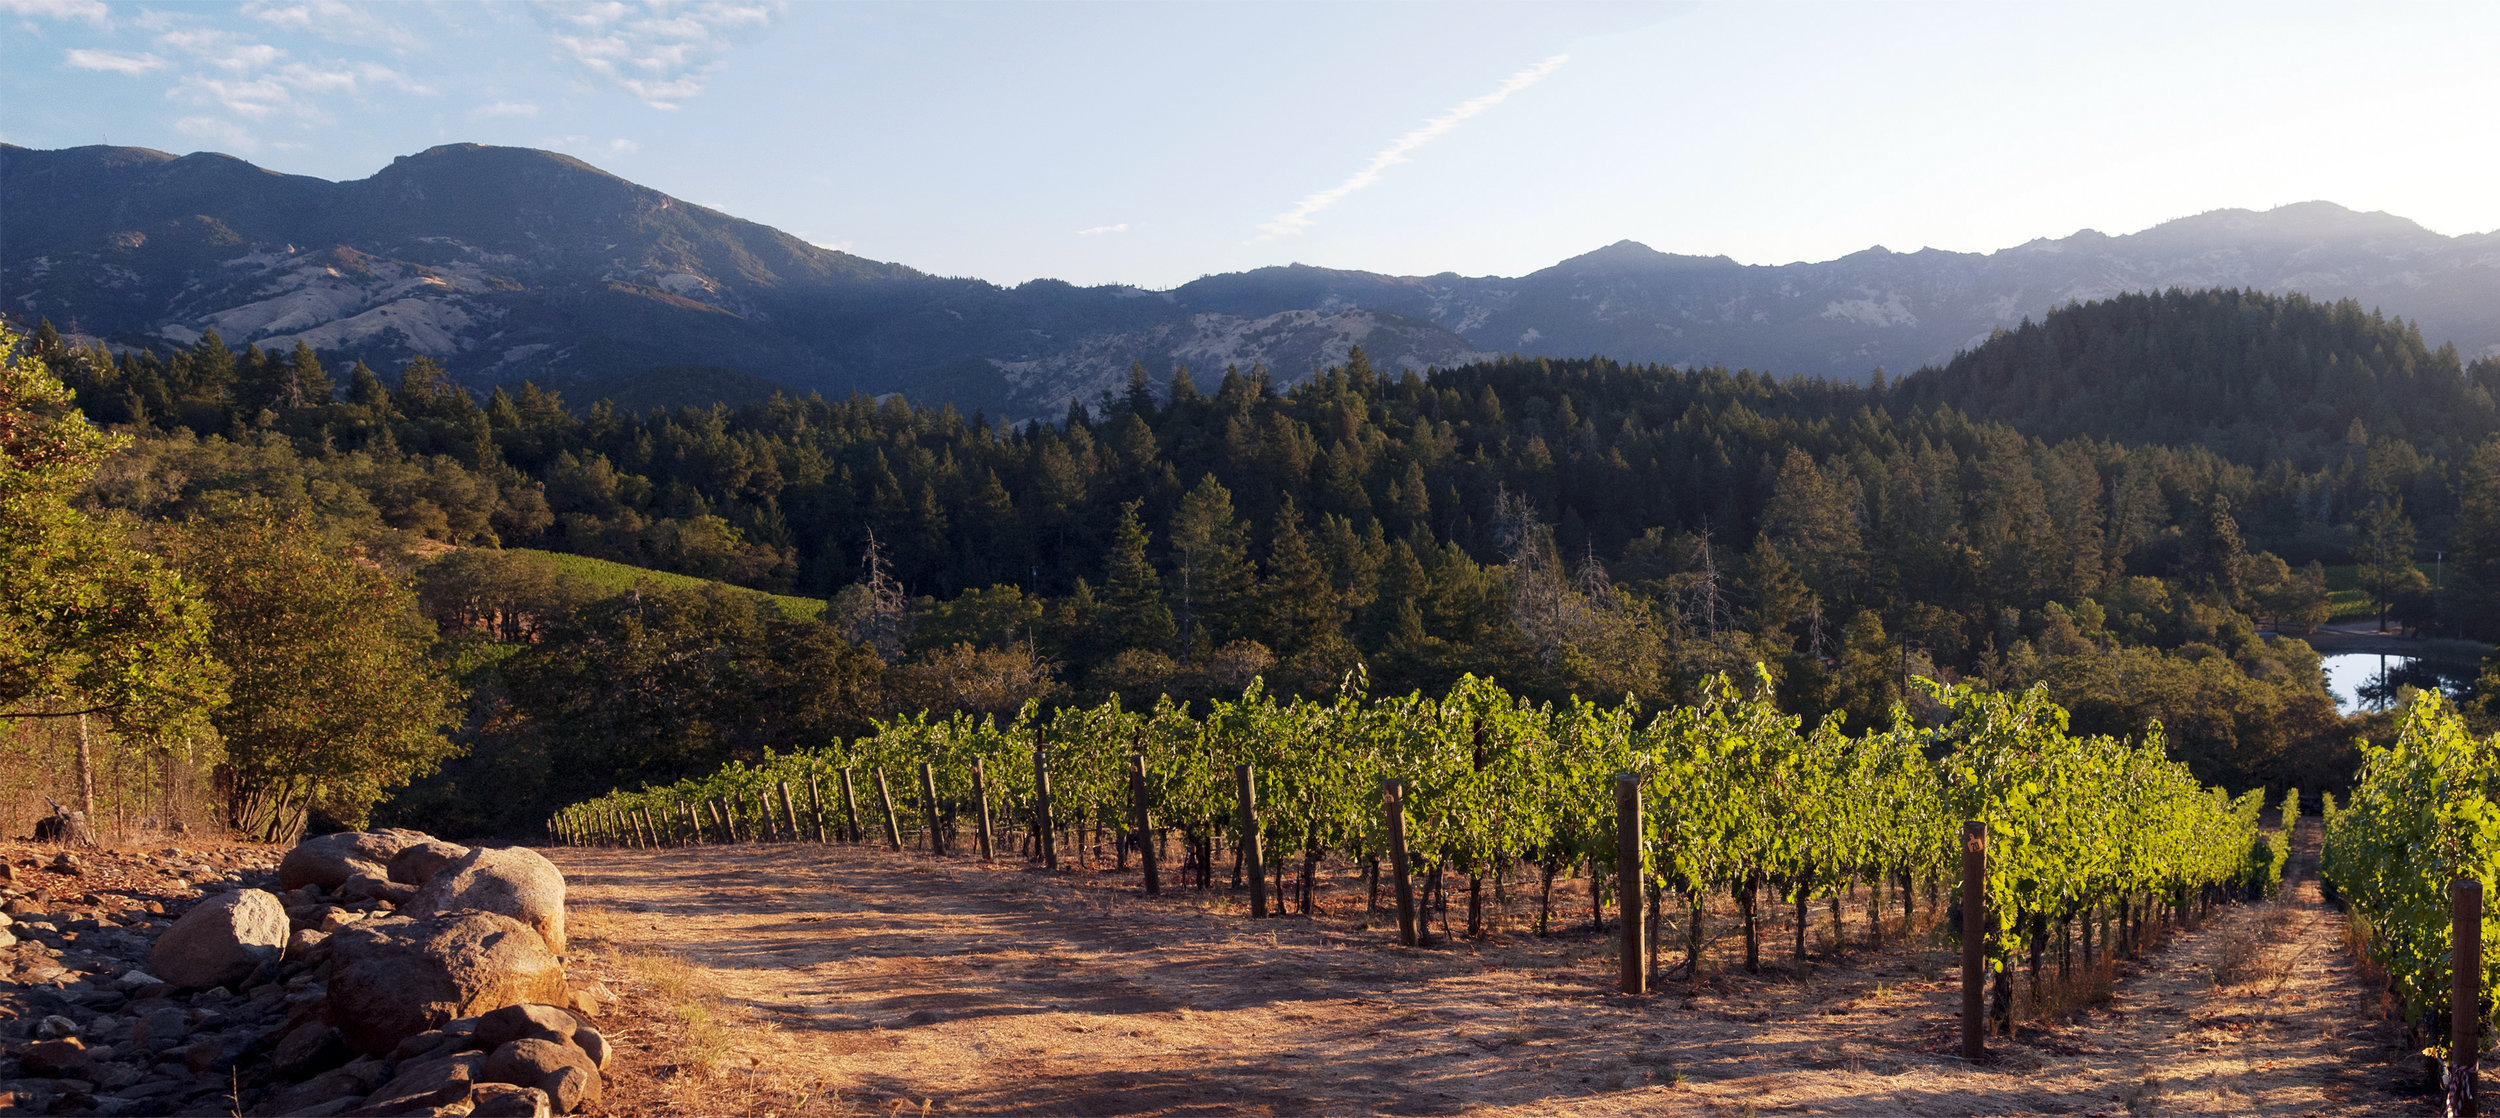 Treva's Vineyard at Dawn.jpg